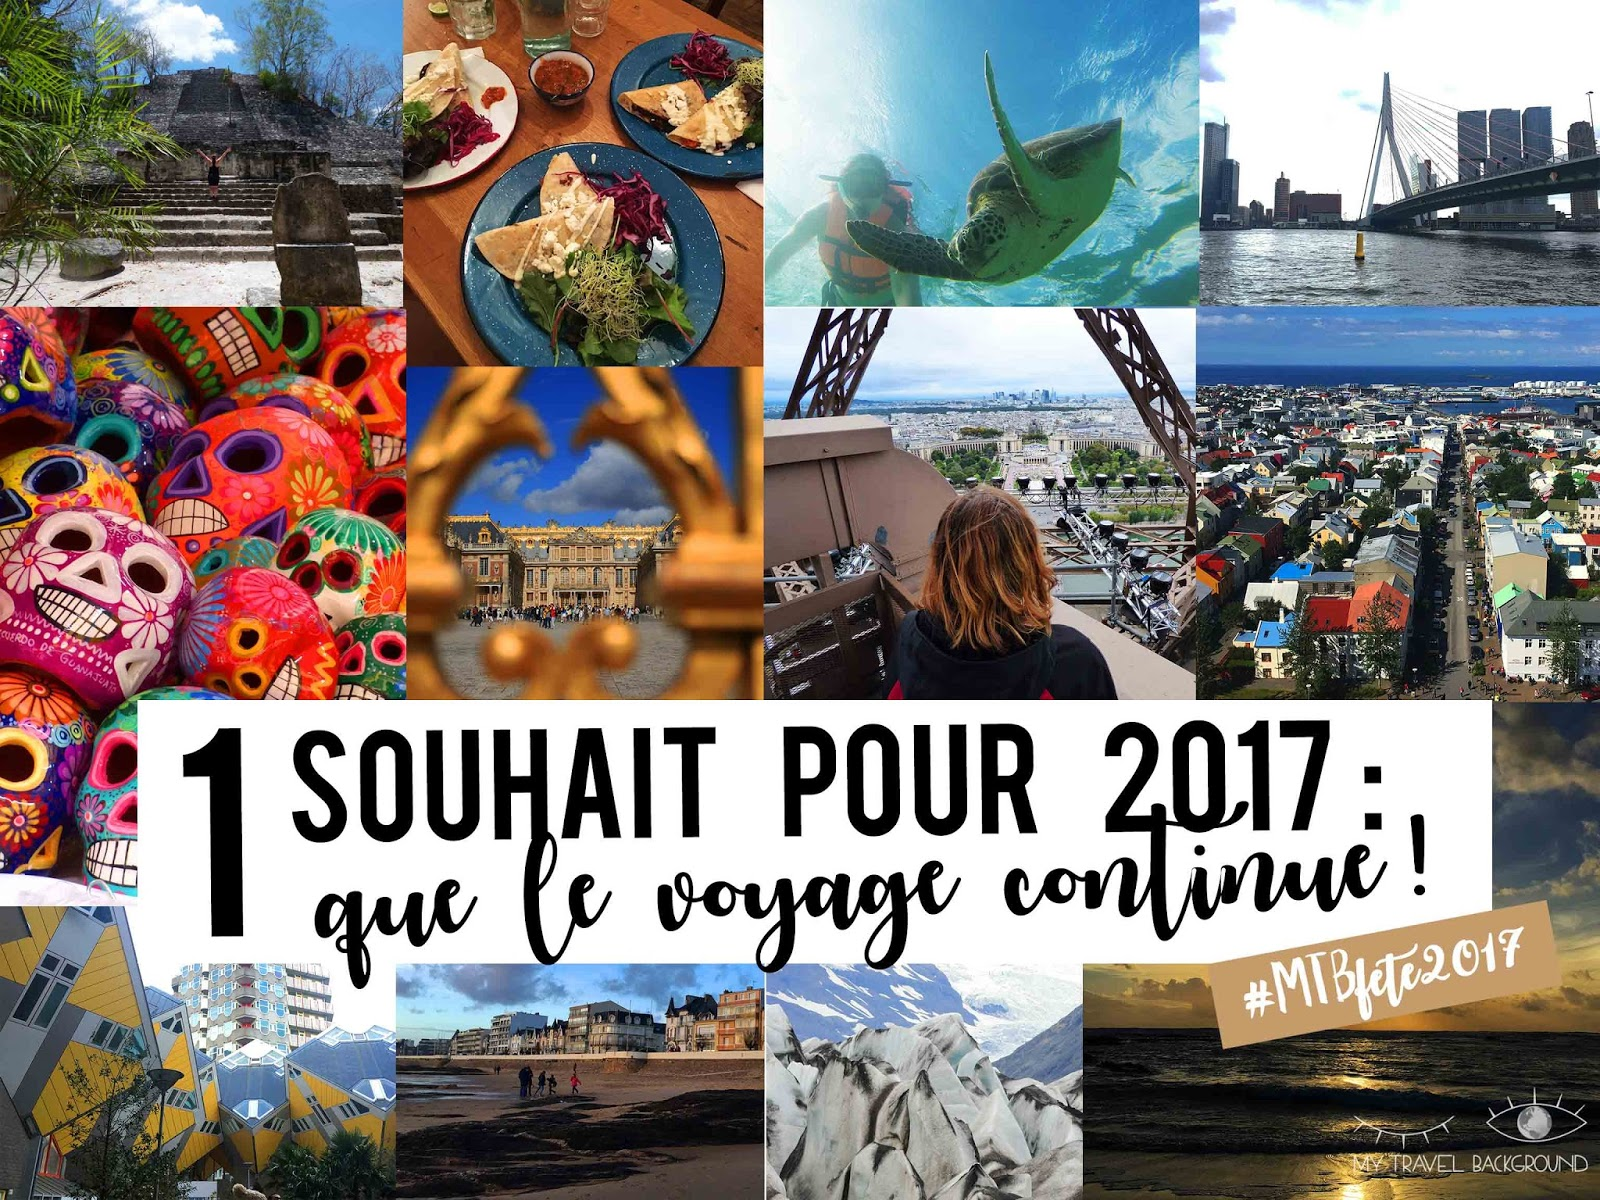 My Travel Background : 1 souhait pour 2017, que le voyage continue !